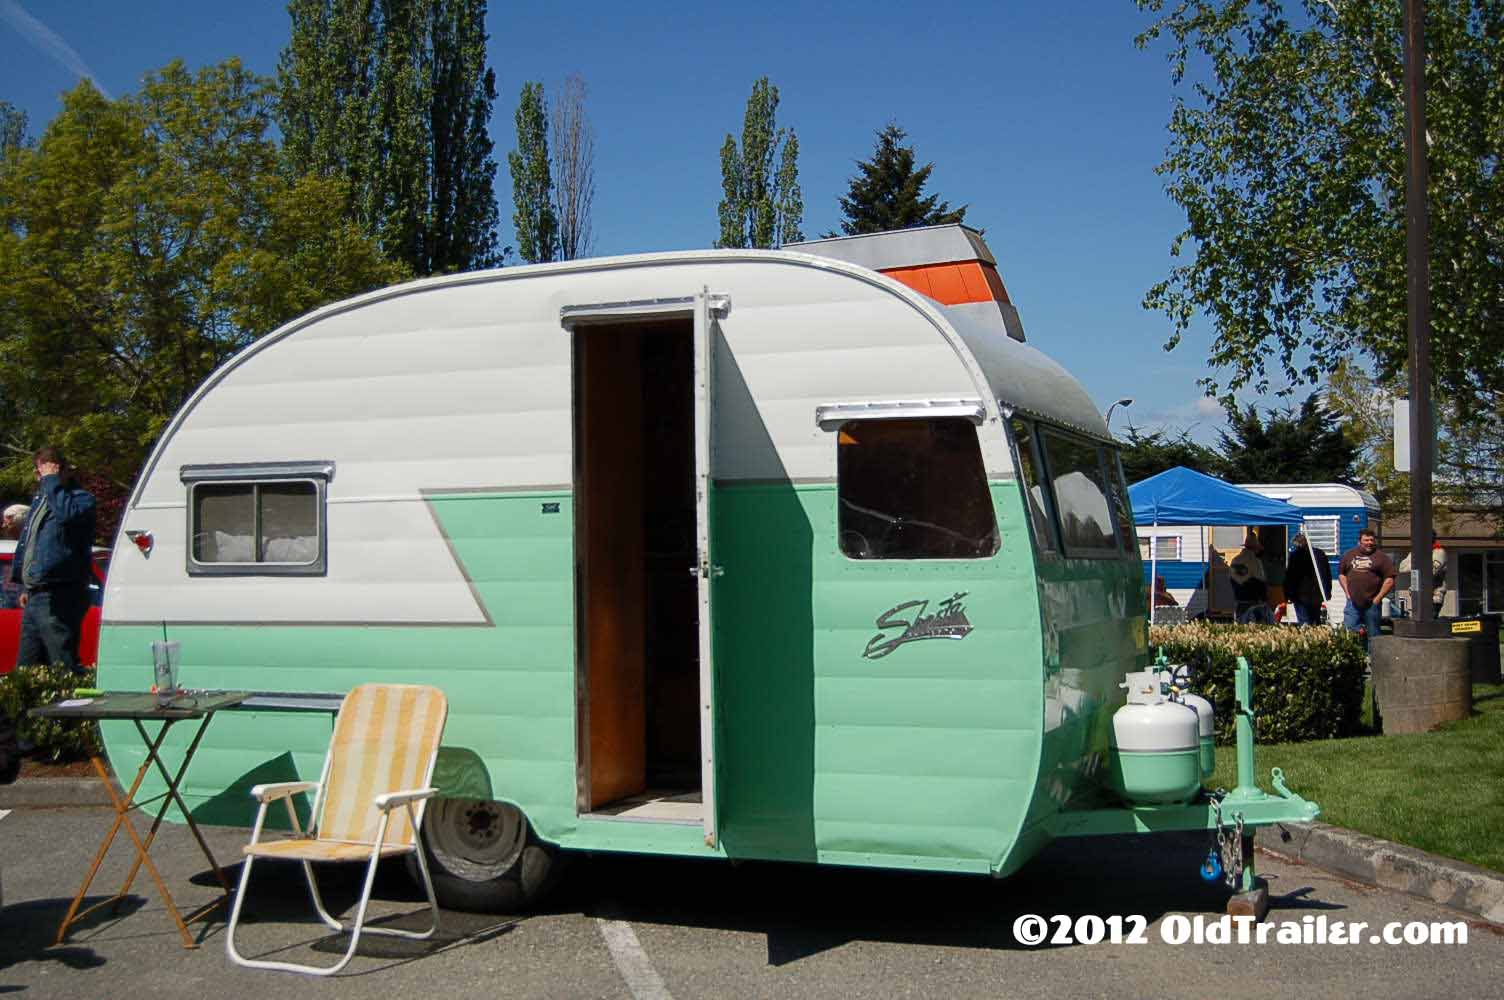 1956 shasta trailer502 vintage shasta trailer pictures and history, from oldtrailer com Shasta 16 Rust at reclaimingppi.co